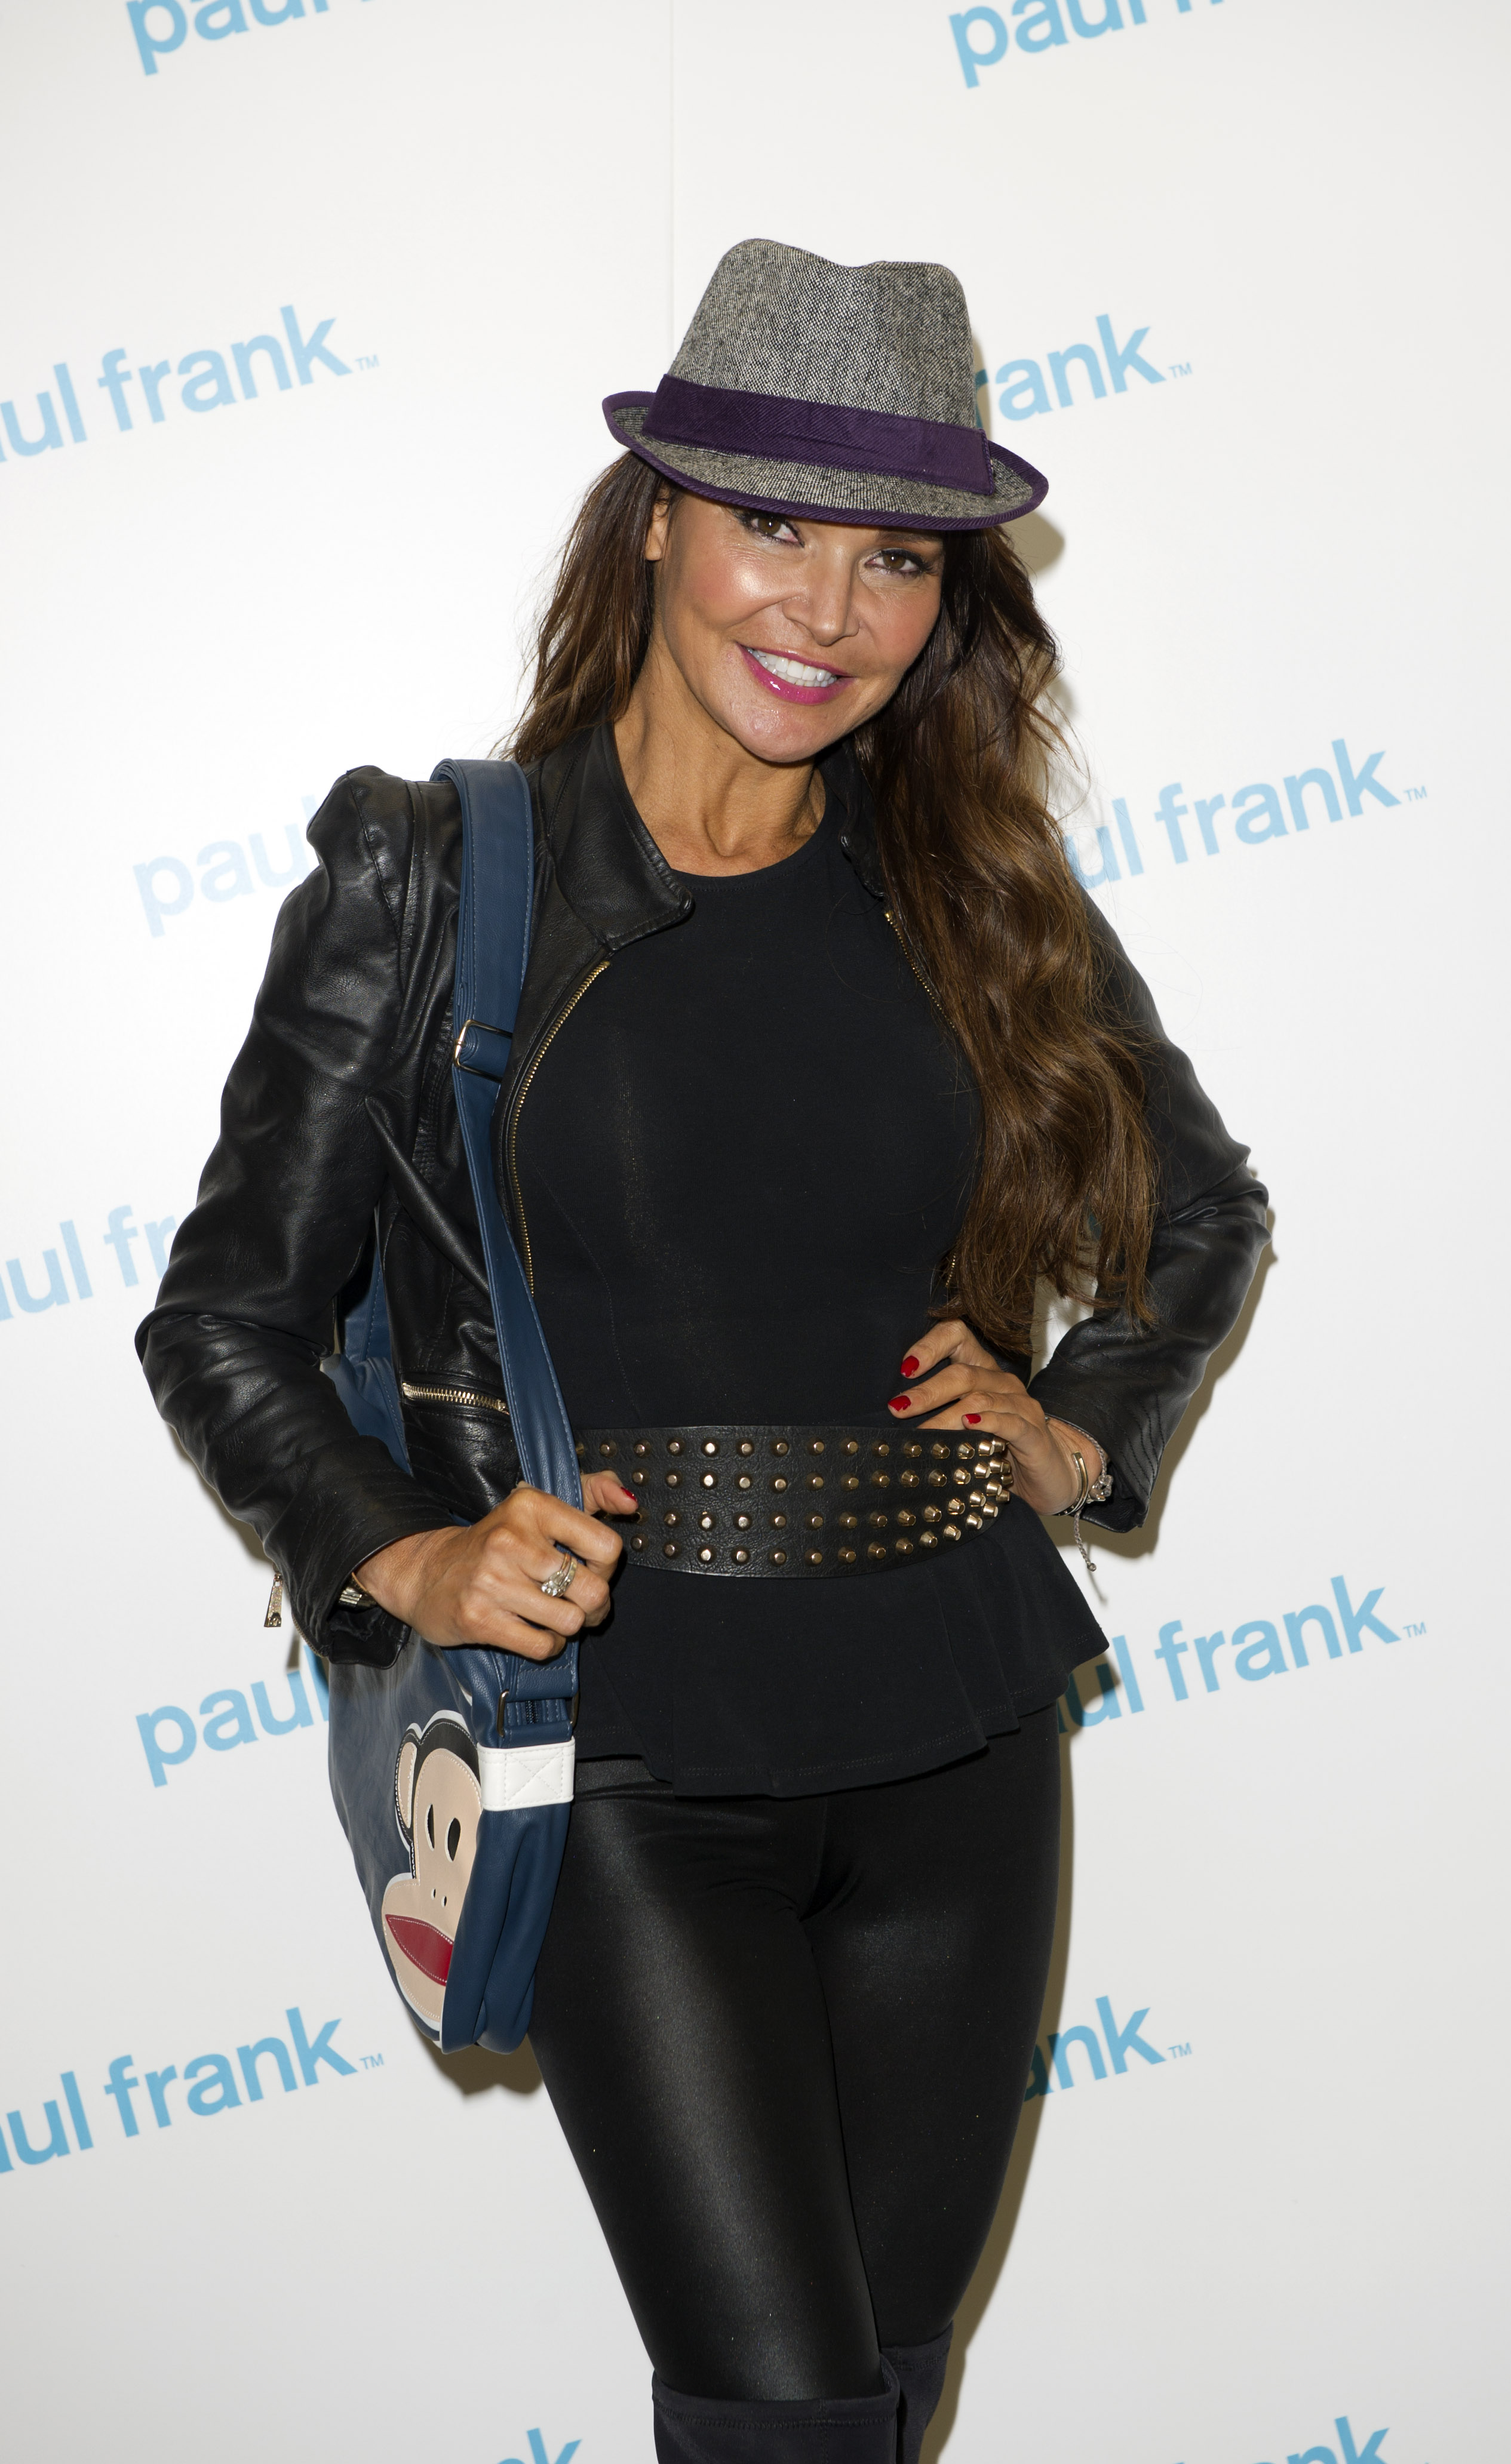 Lizzie Cundy   - Come Rock With Paul Frank 15th oct 2013 (2).jpg